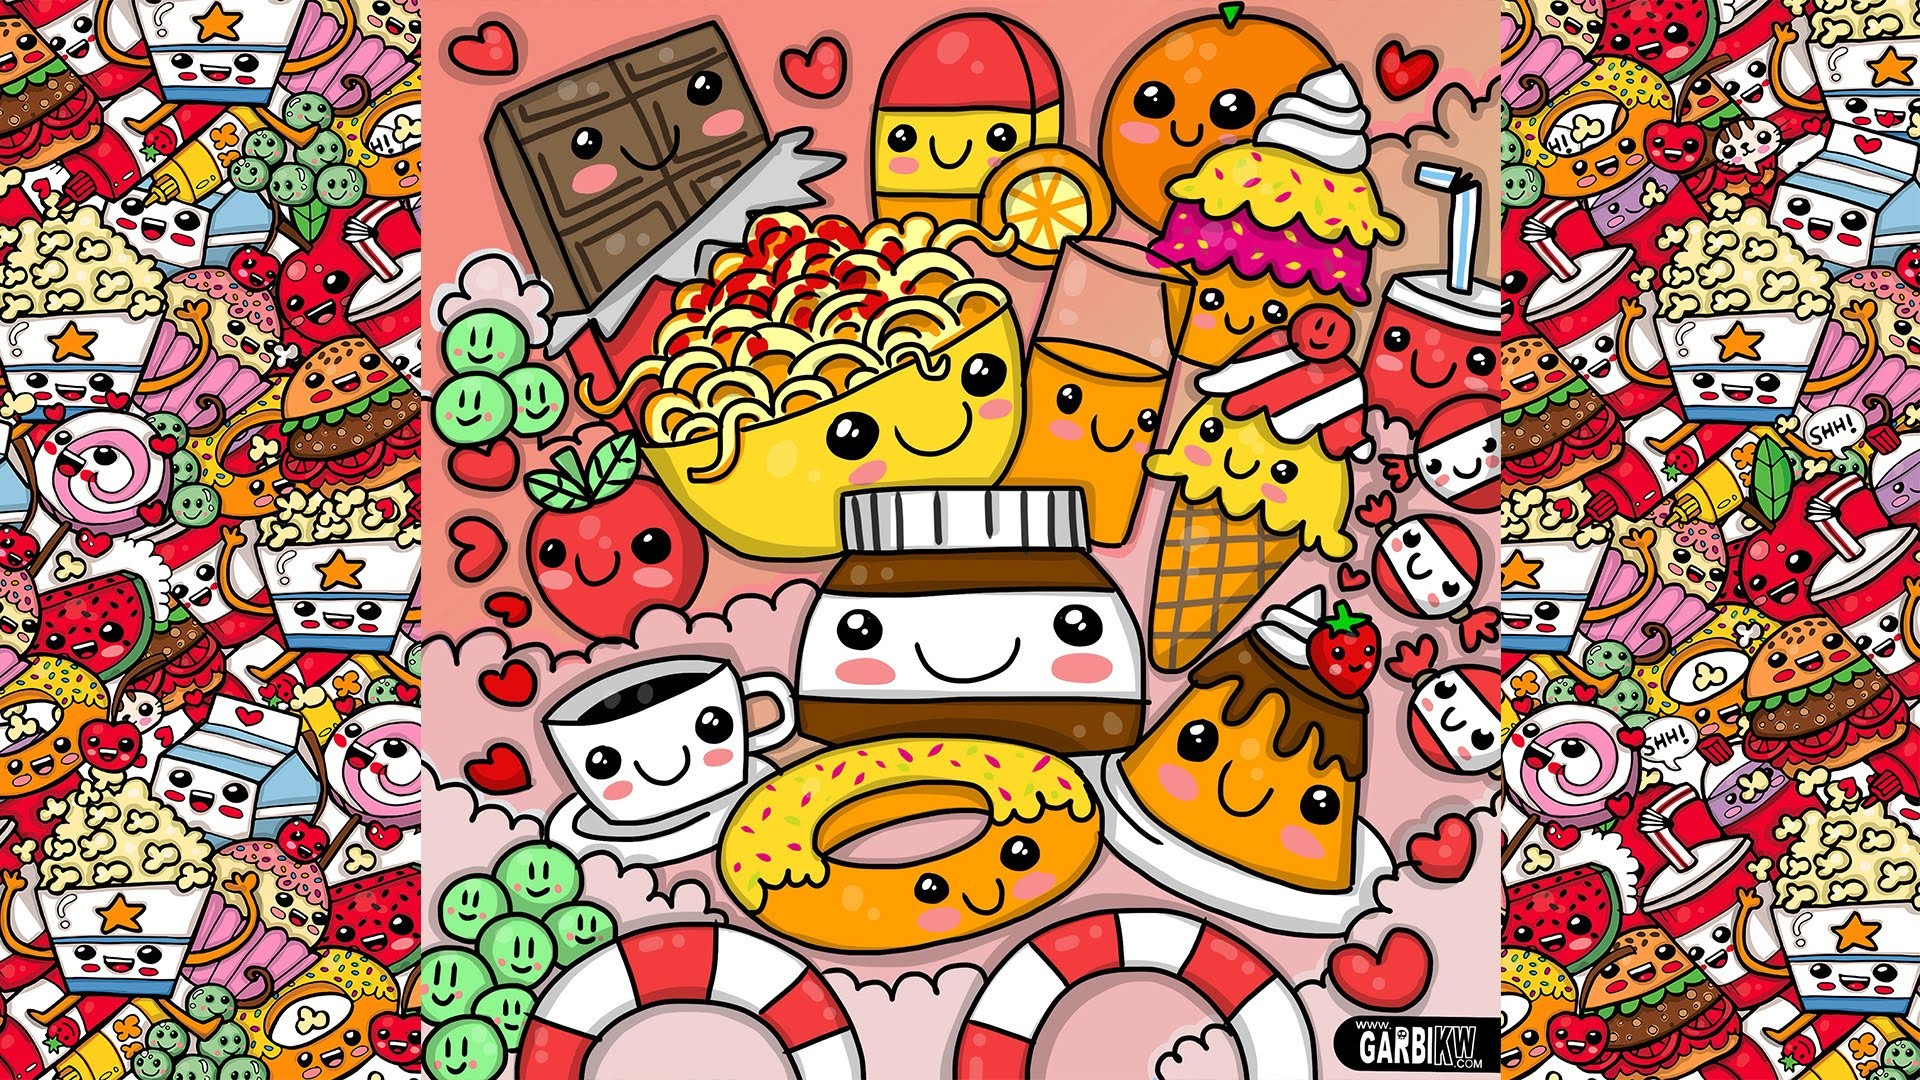 How To Draw Party Kawaii Food by Garbi KW